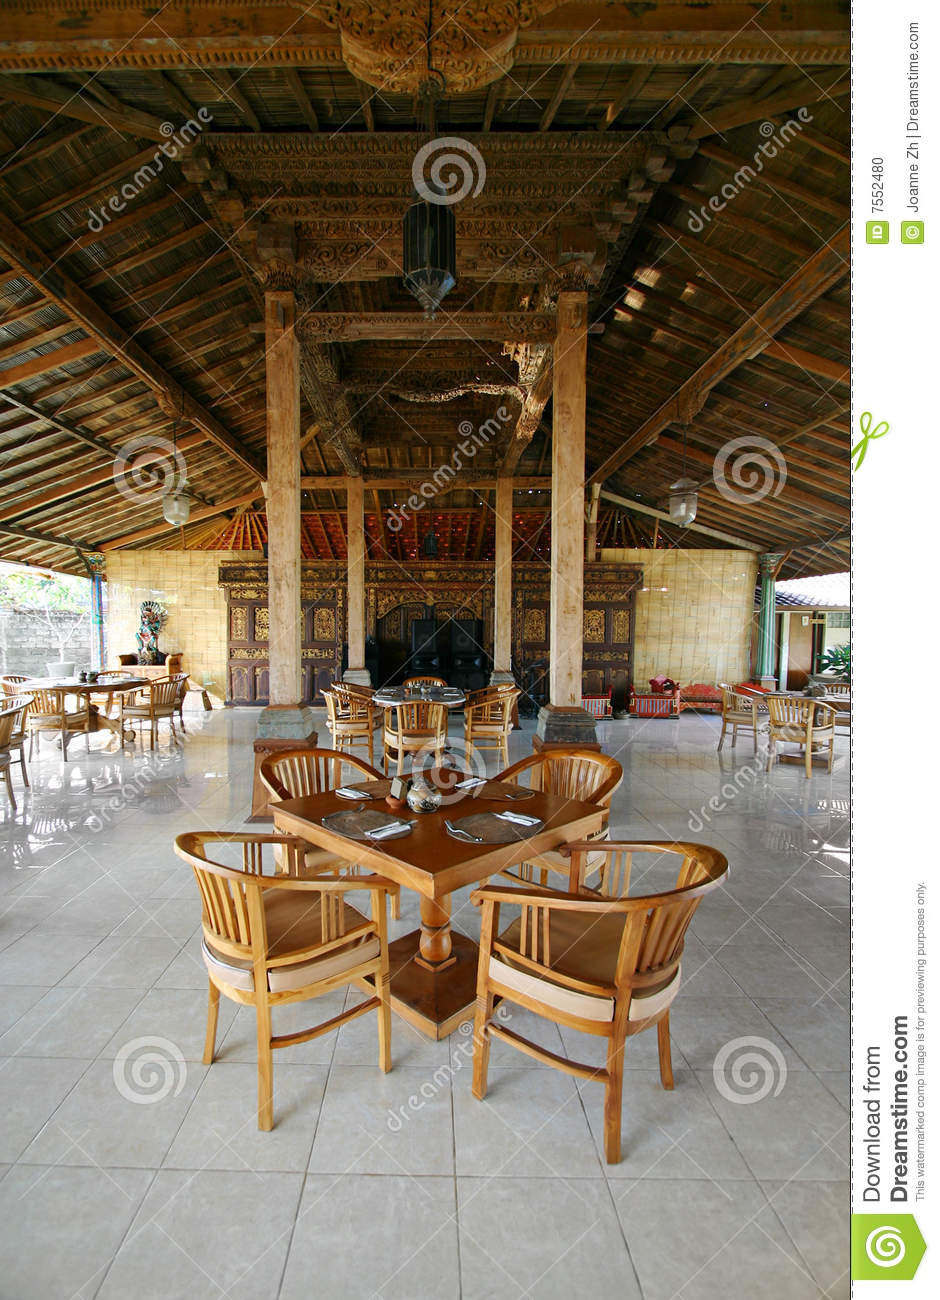 Bali restaurant interior stock photo image